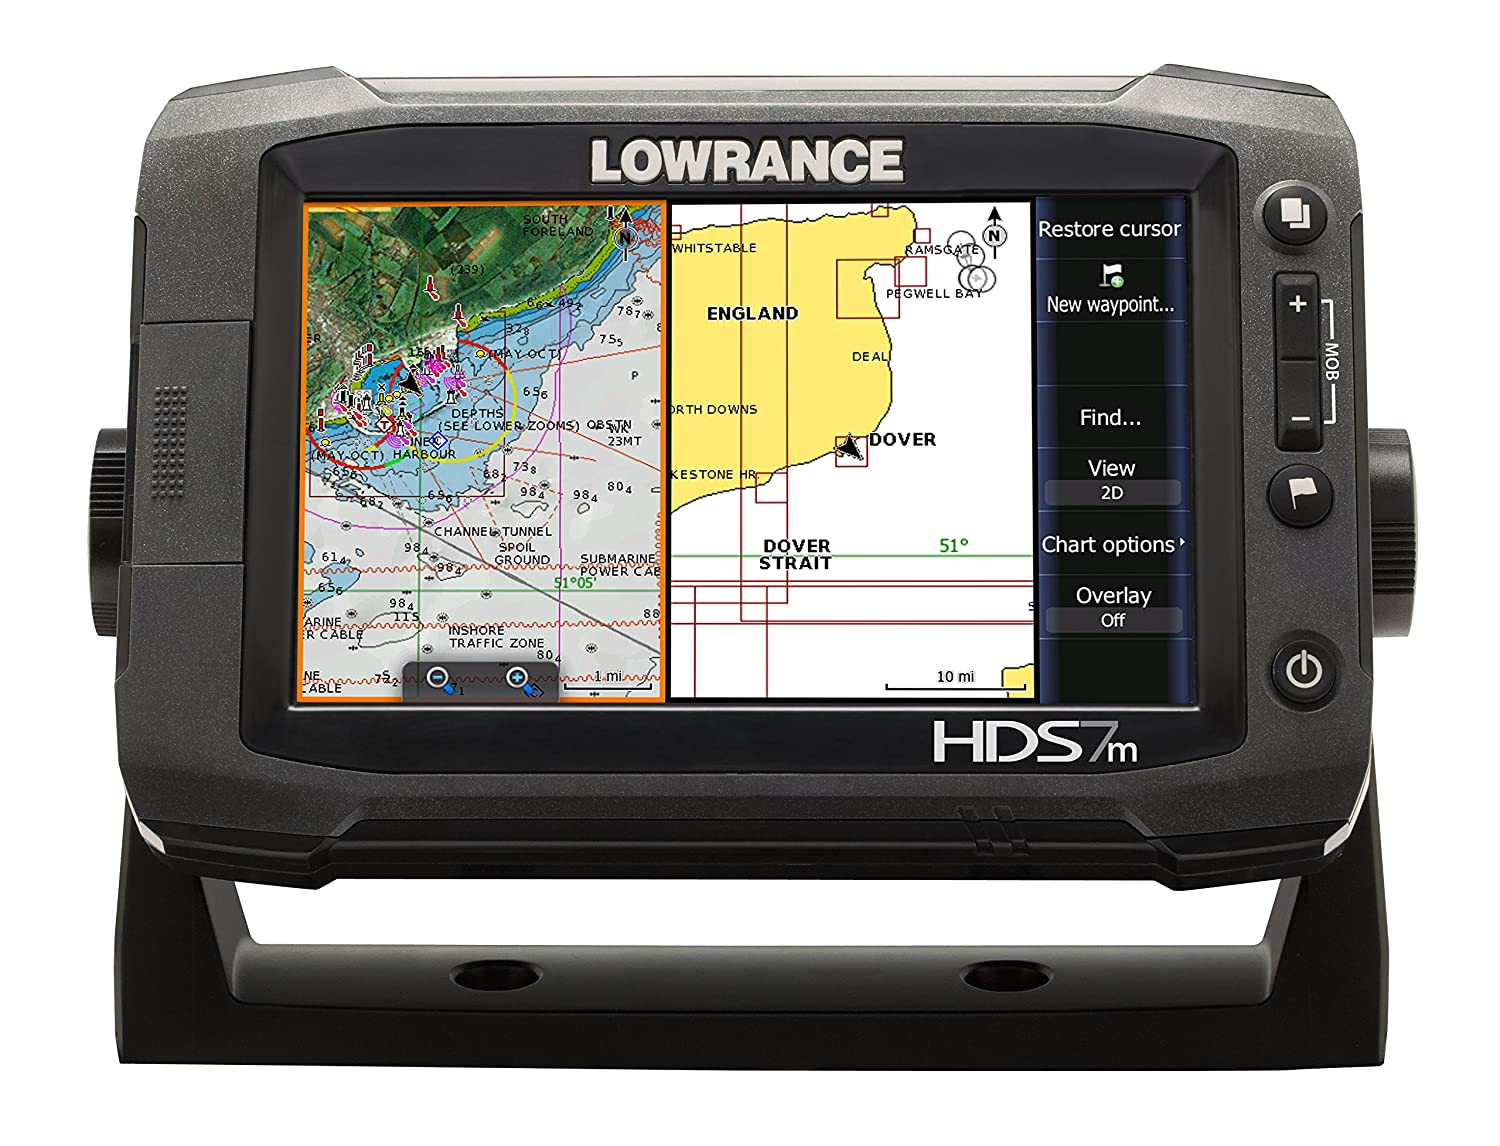 Lowrance Hds 7m Gen2 Touch Chartplotter 7 Inch Display Sonichub Wiring Diagram Electronics